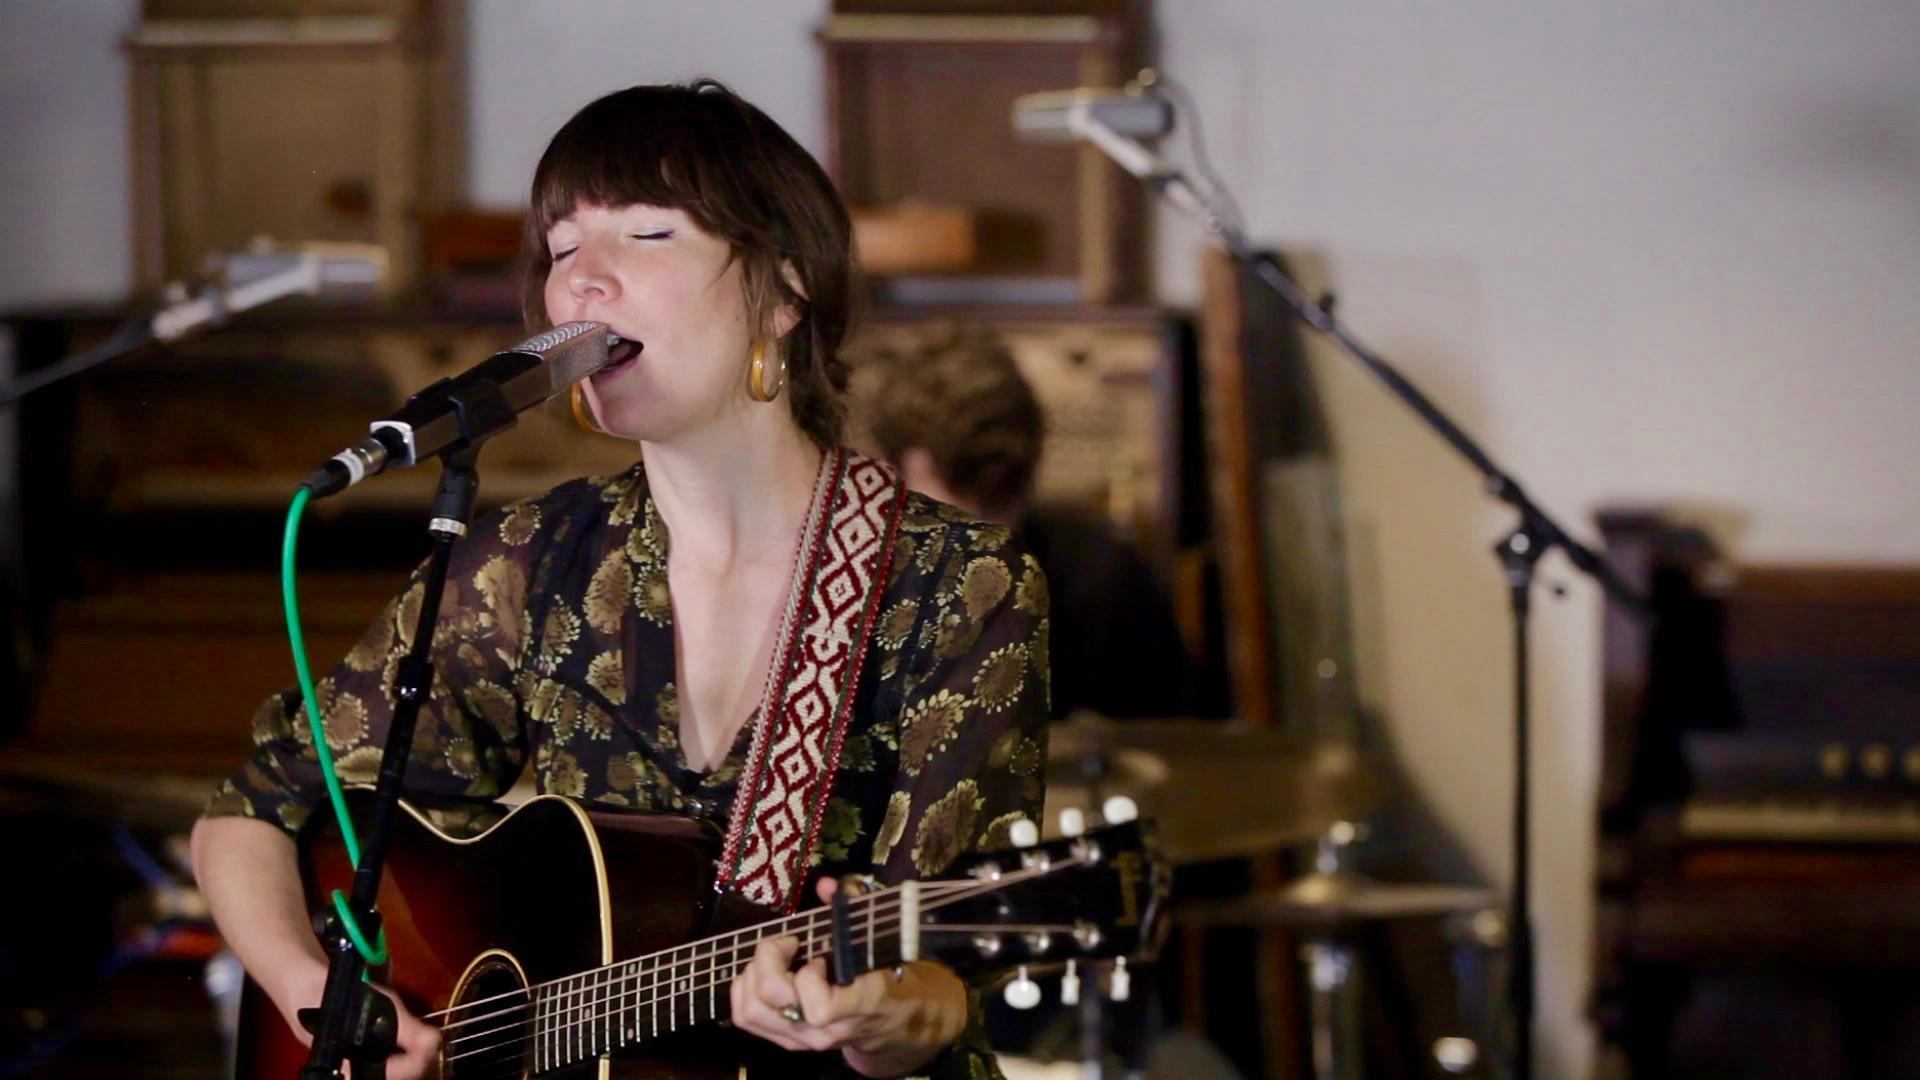 Anna Tivel performs an opbmusic Live Session at Type Foundry Studio in Portland